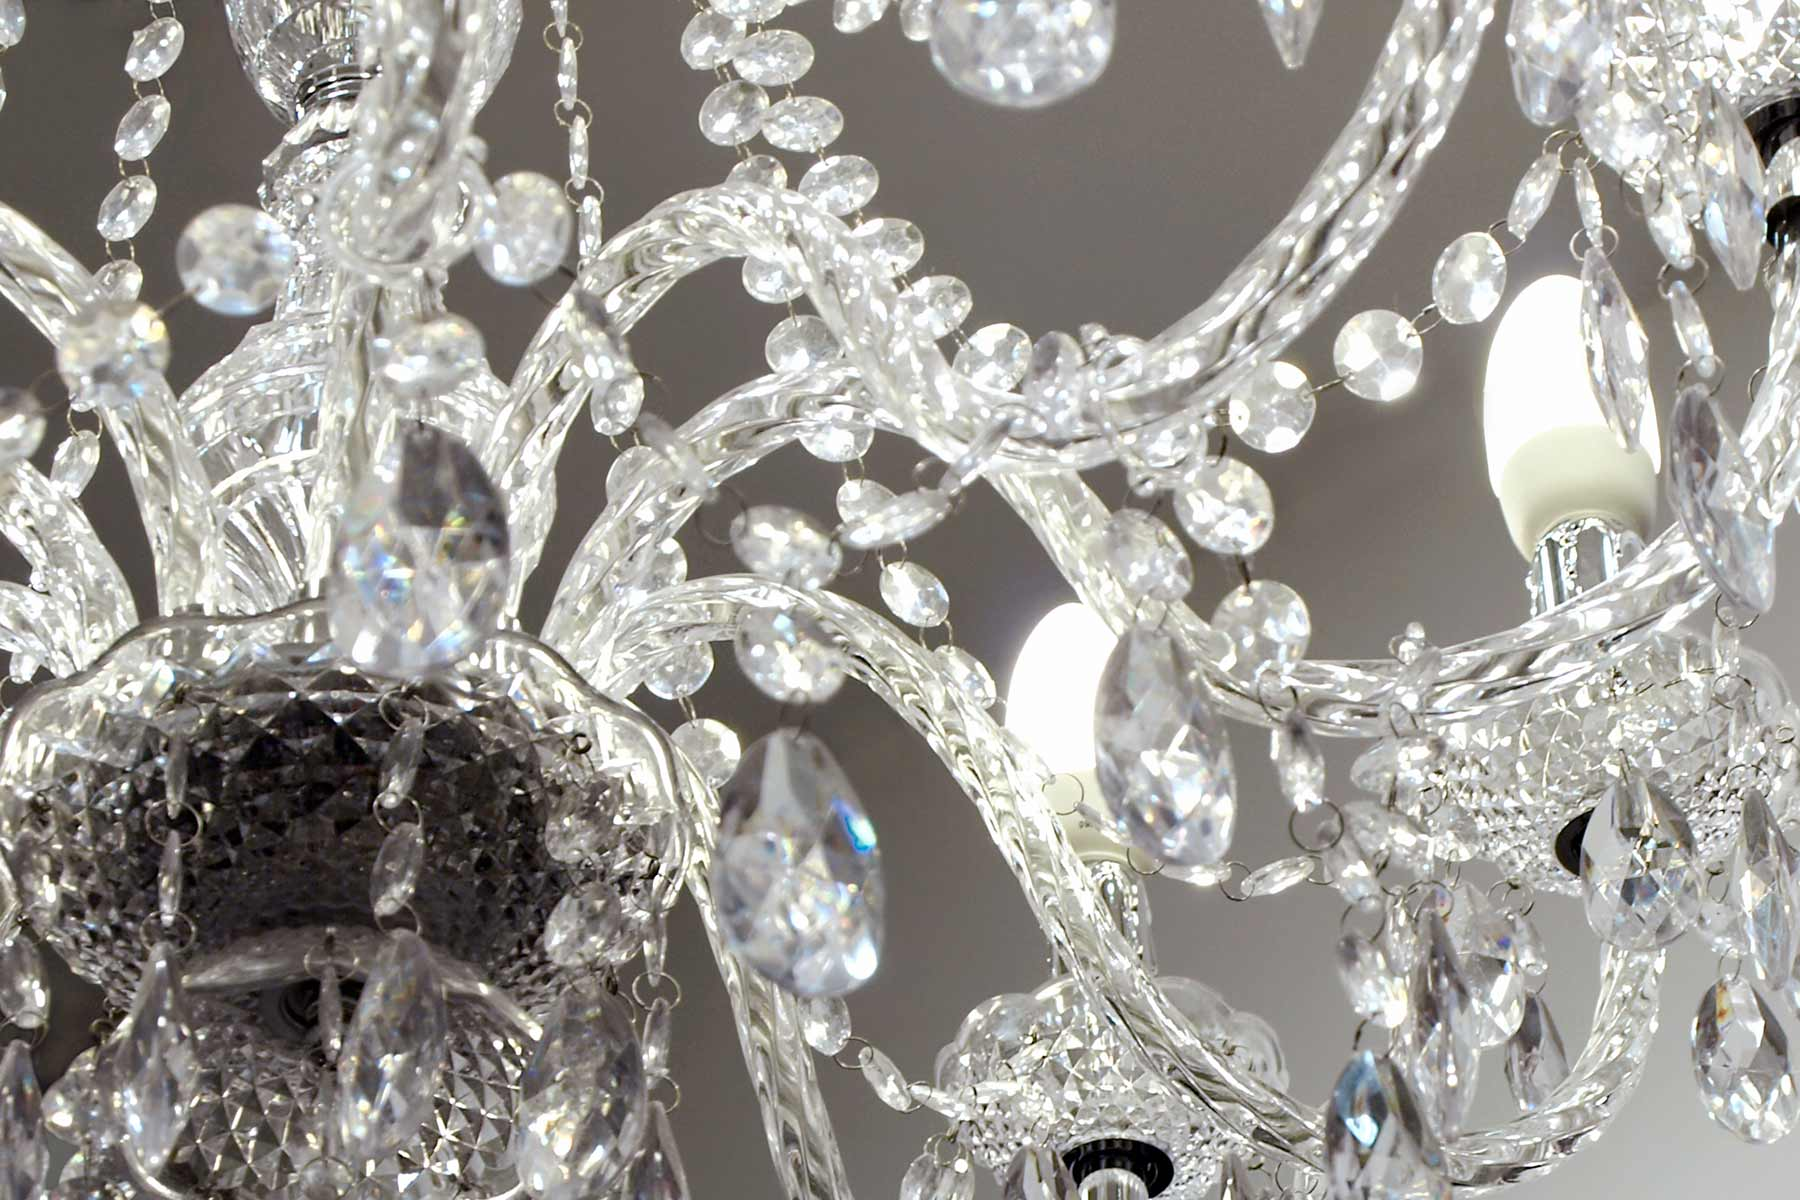 A crystal chandelier splashes light across a wall and ceiling